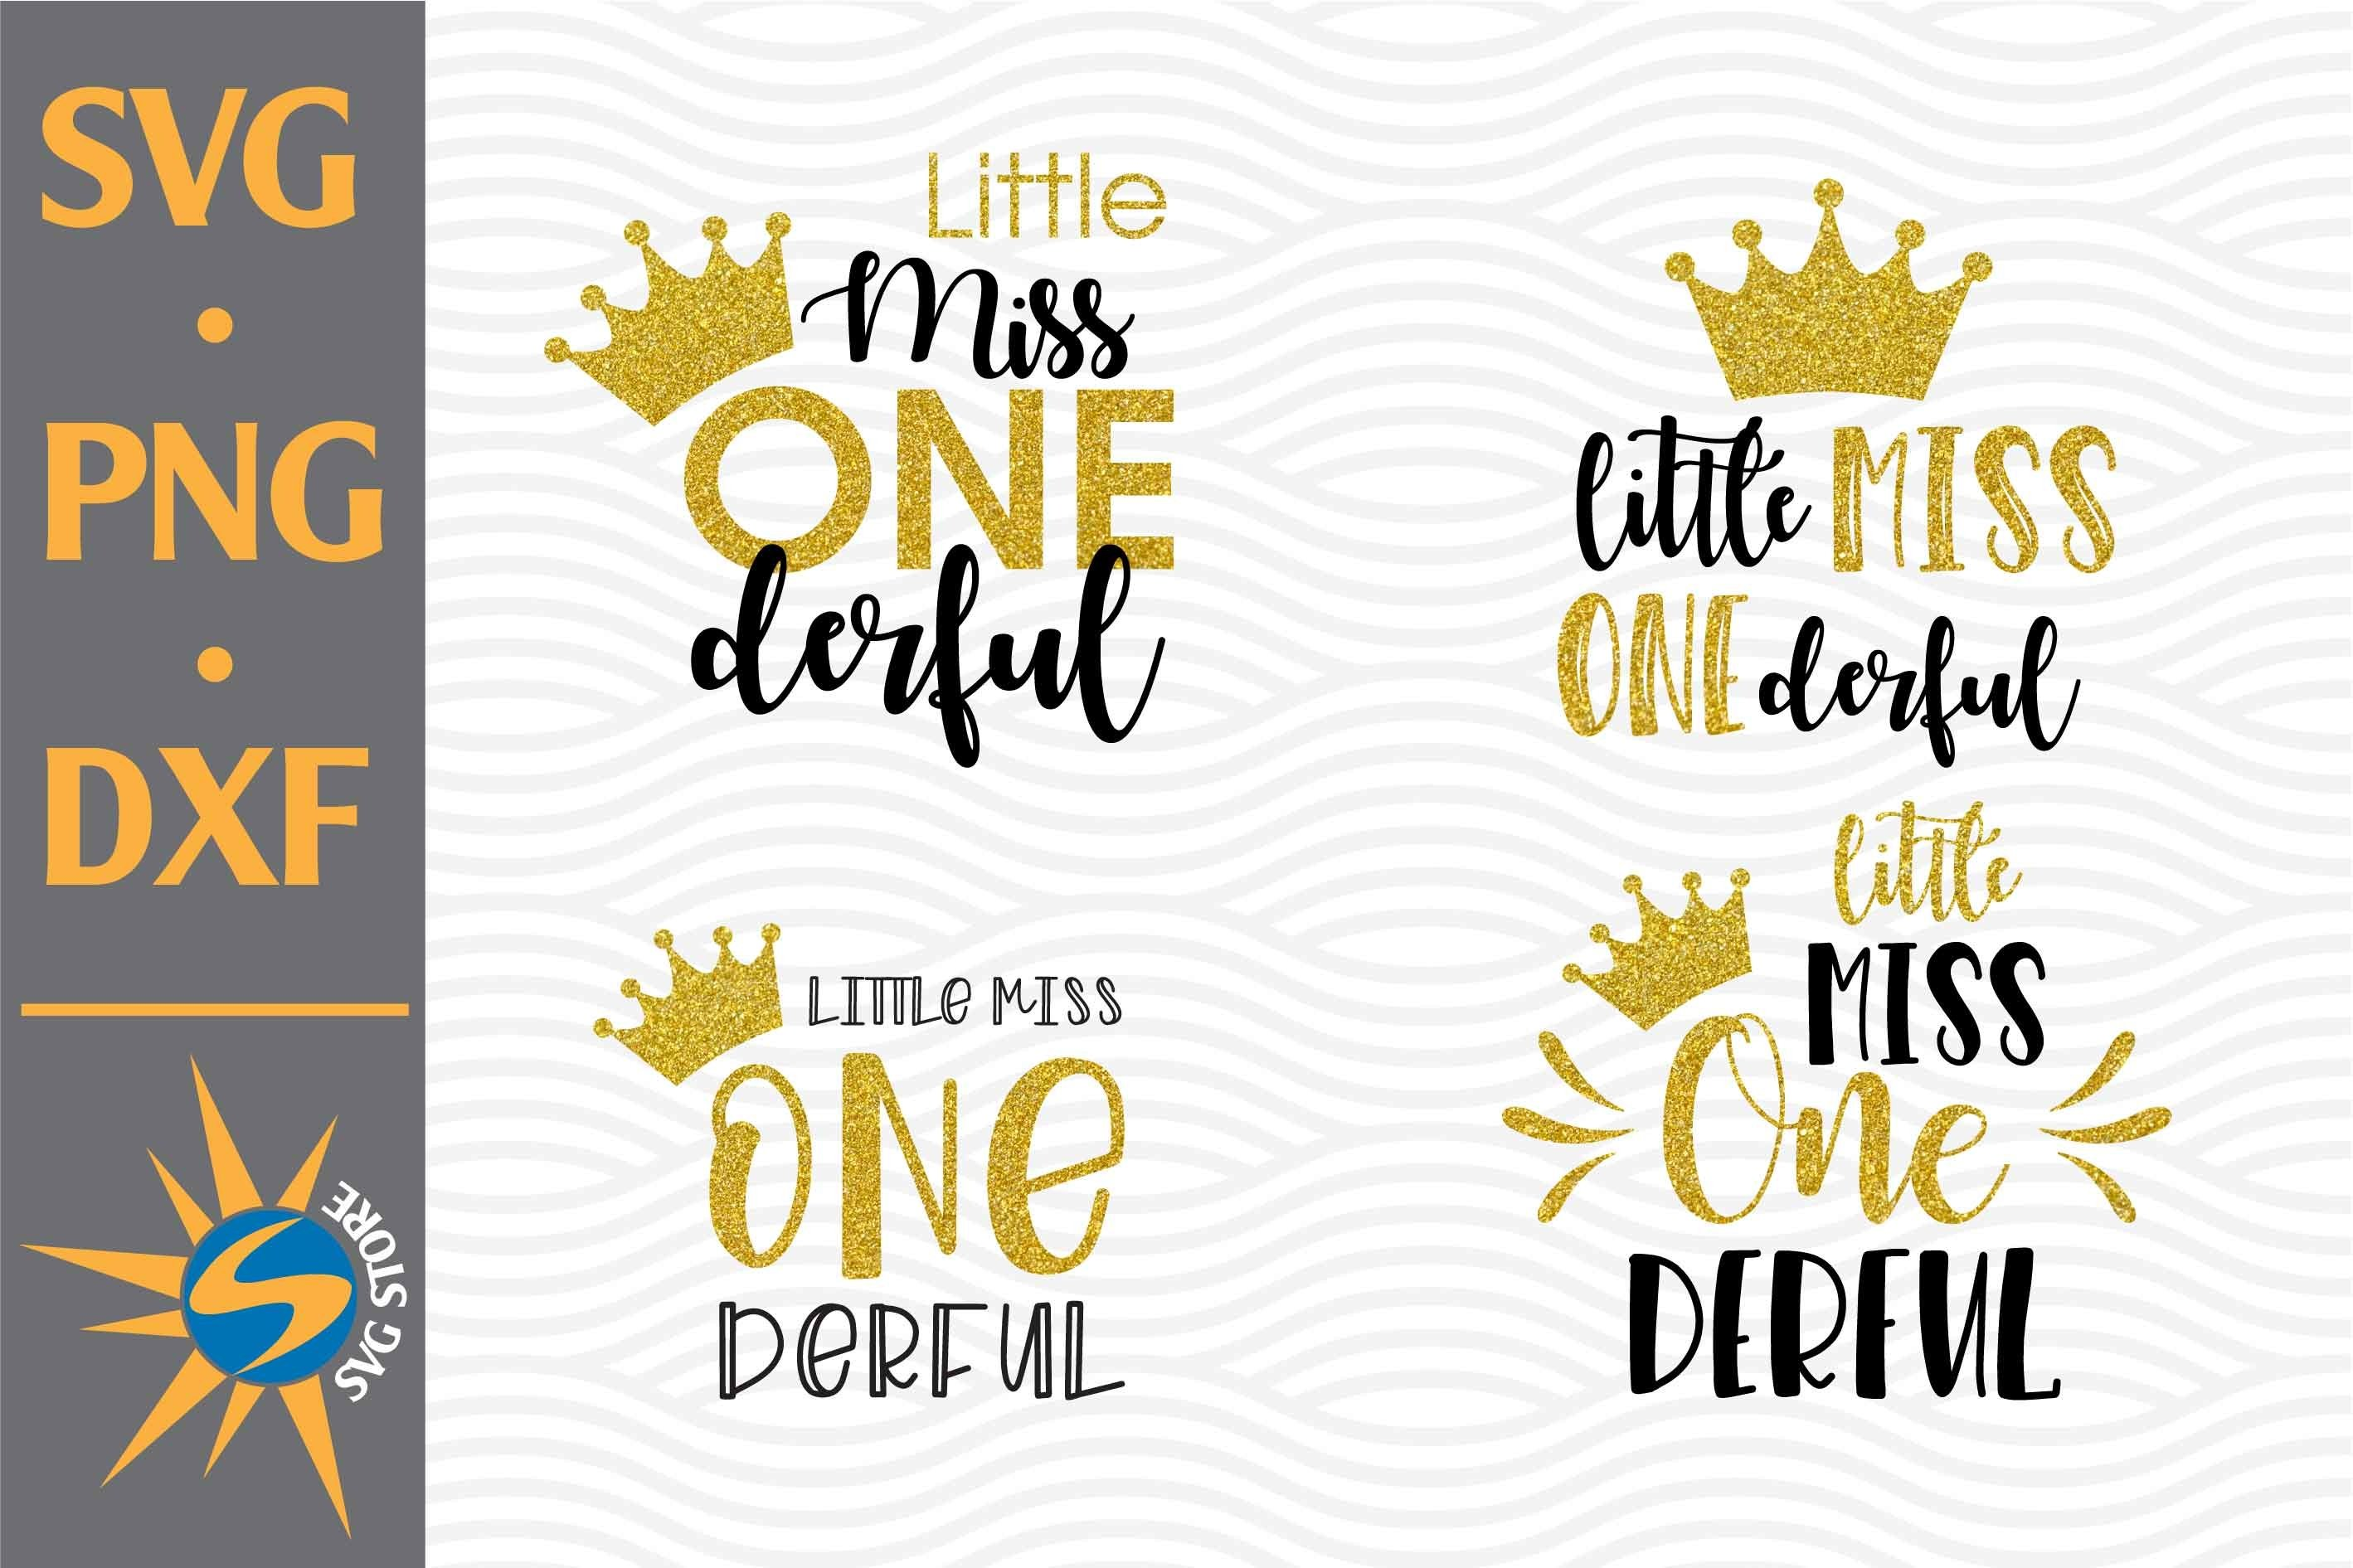 Little Miss Onederful Svg Png Dxf Digital Files Include 723565 Cut Files Design Bundles